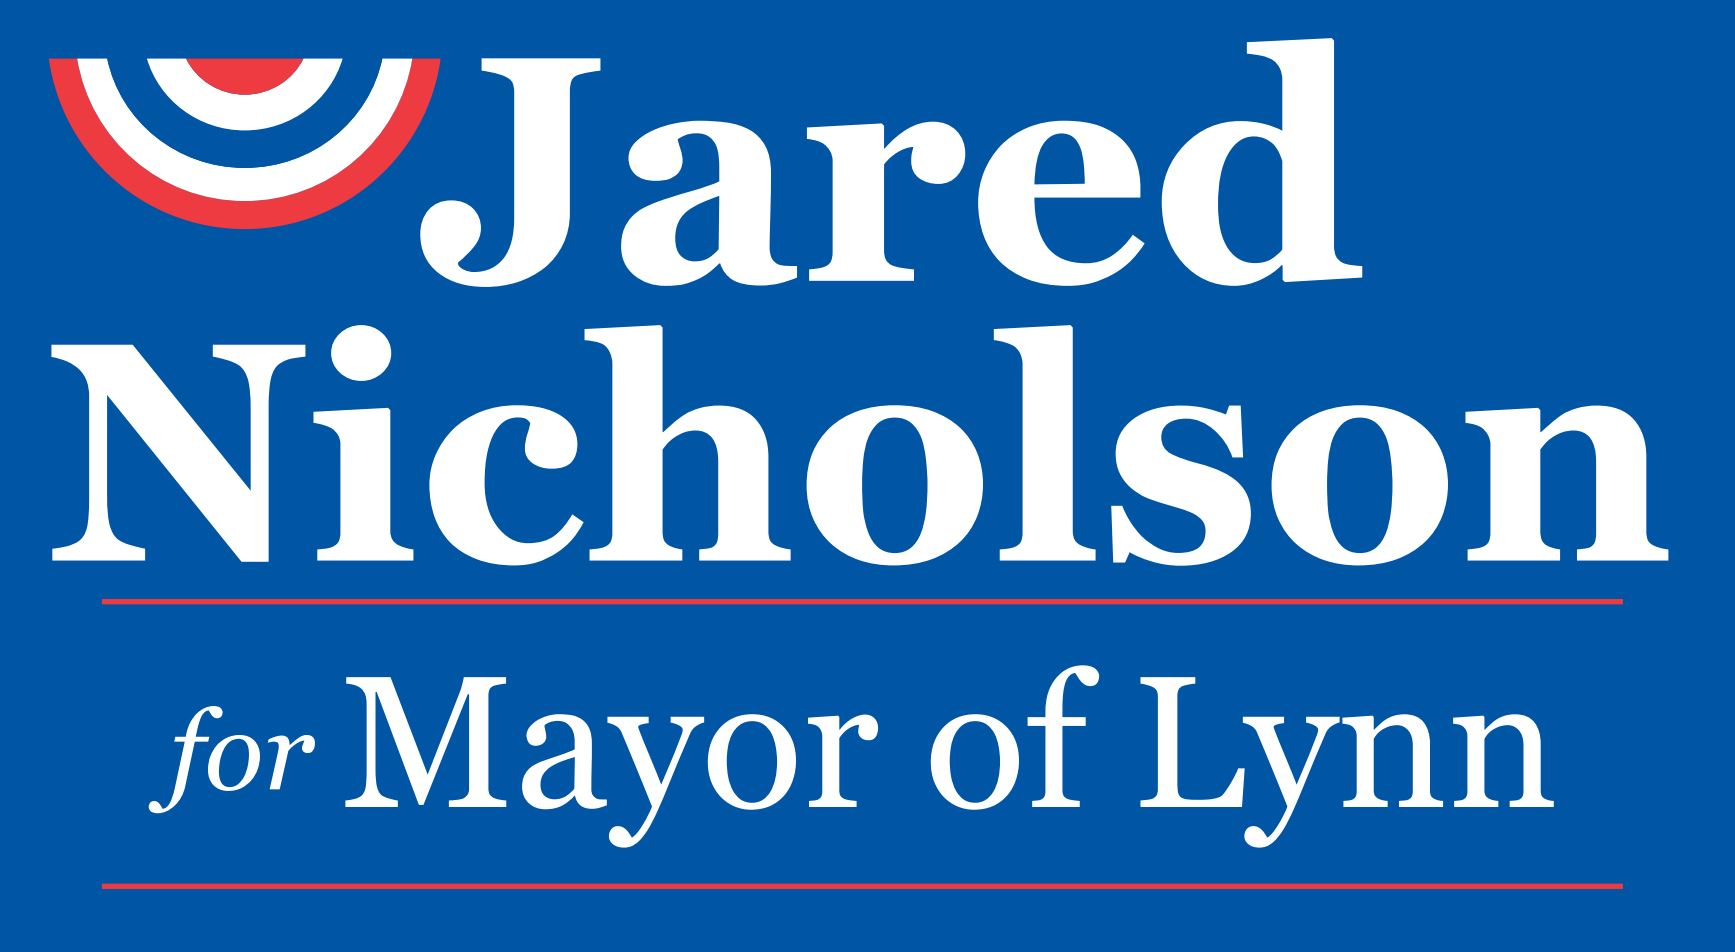 Jared Nicholson for Mayor of Lynn